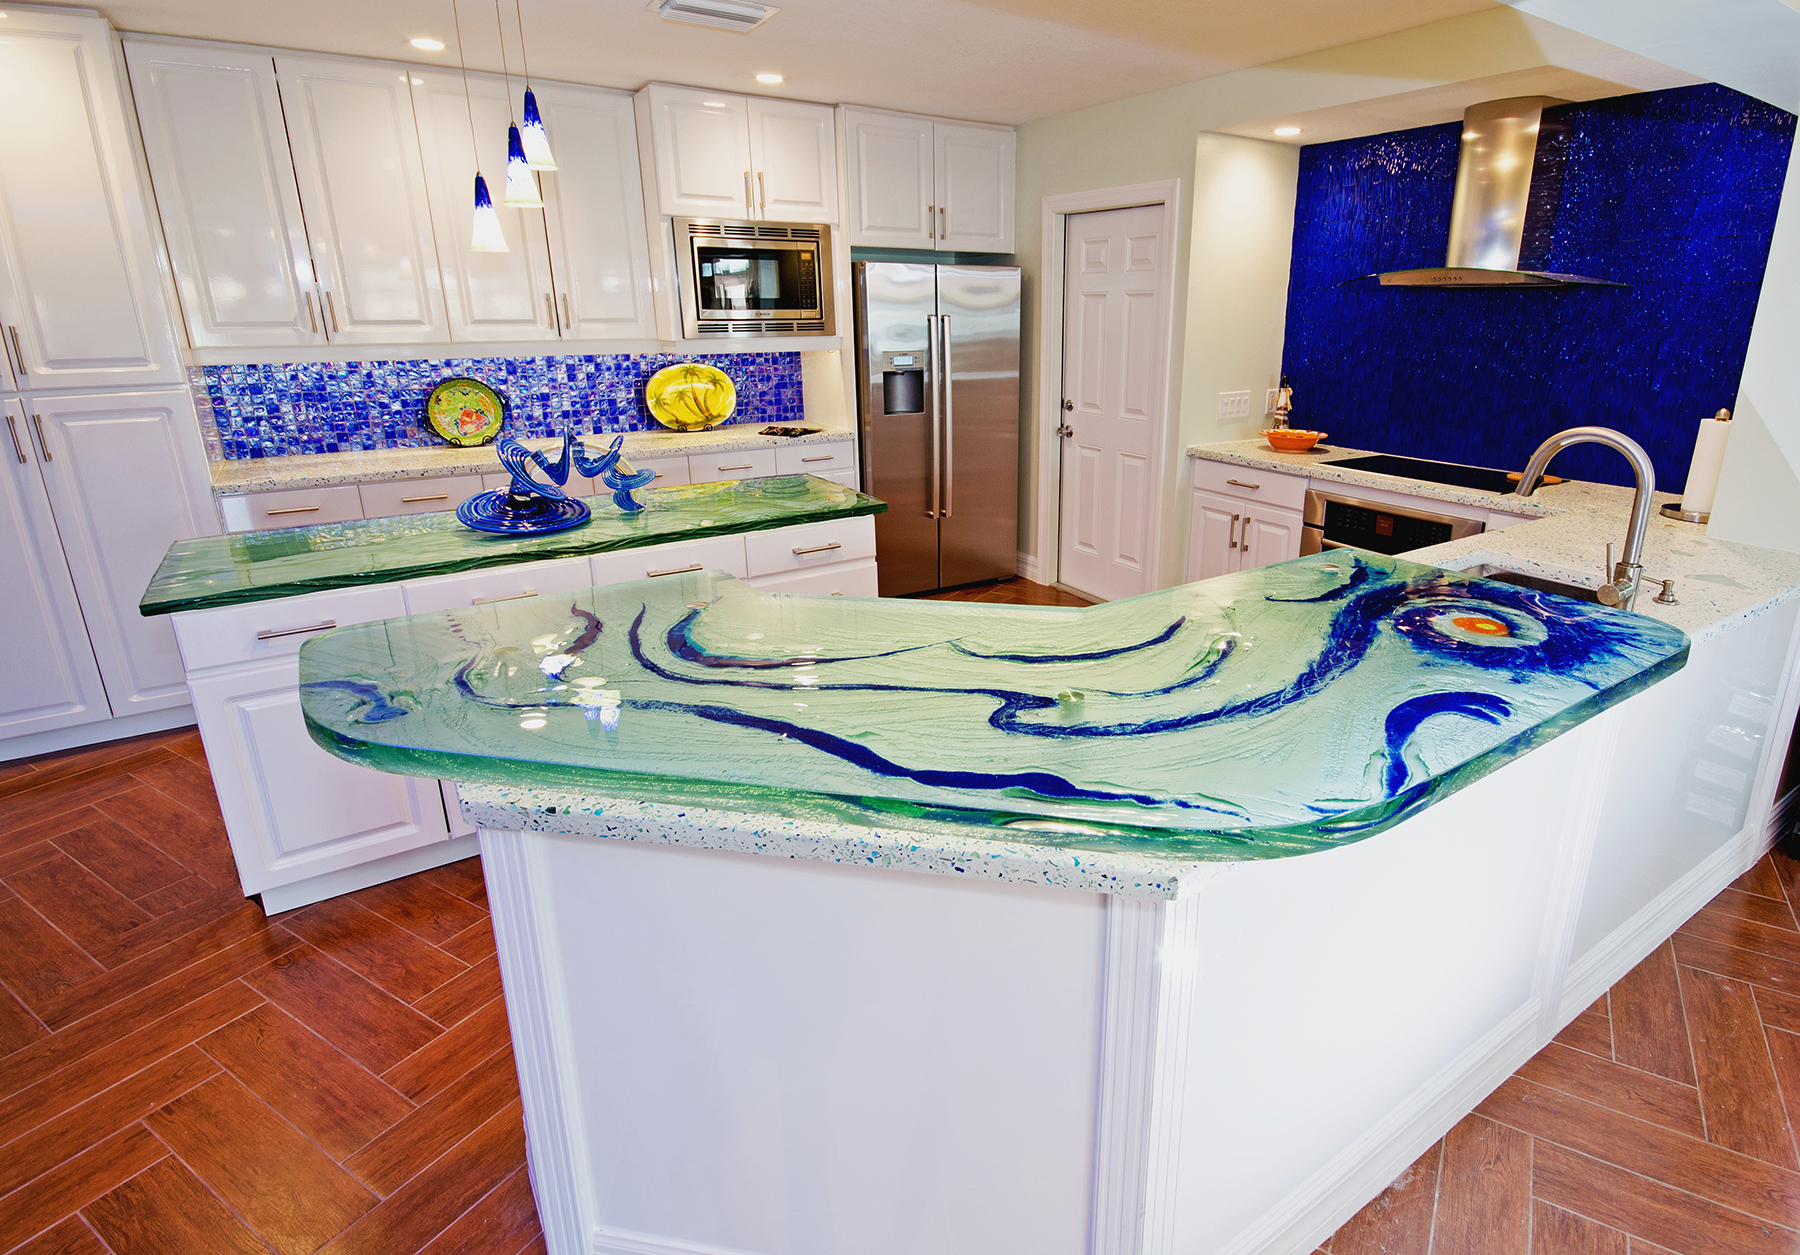 2017 buying guide to custom glass countertops white glass